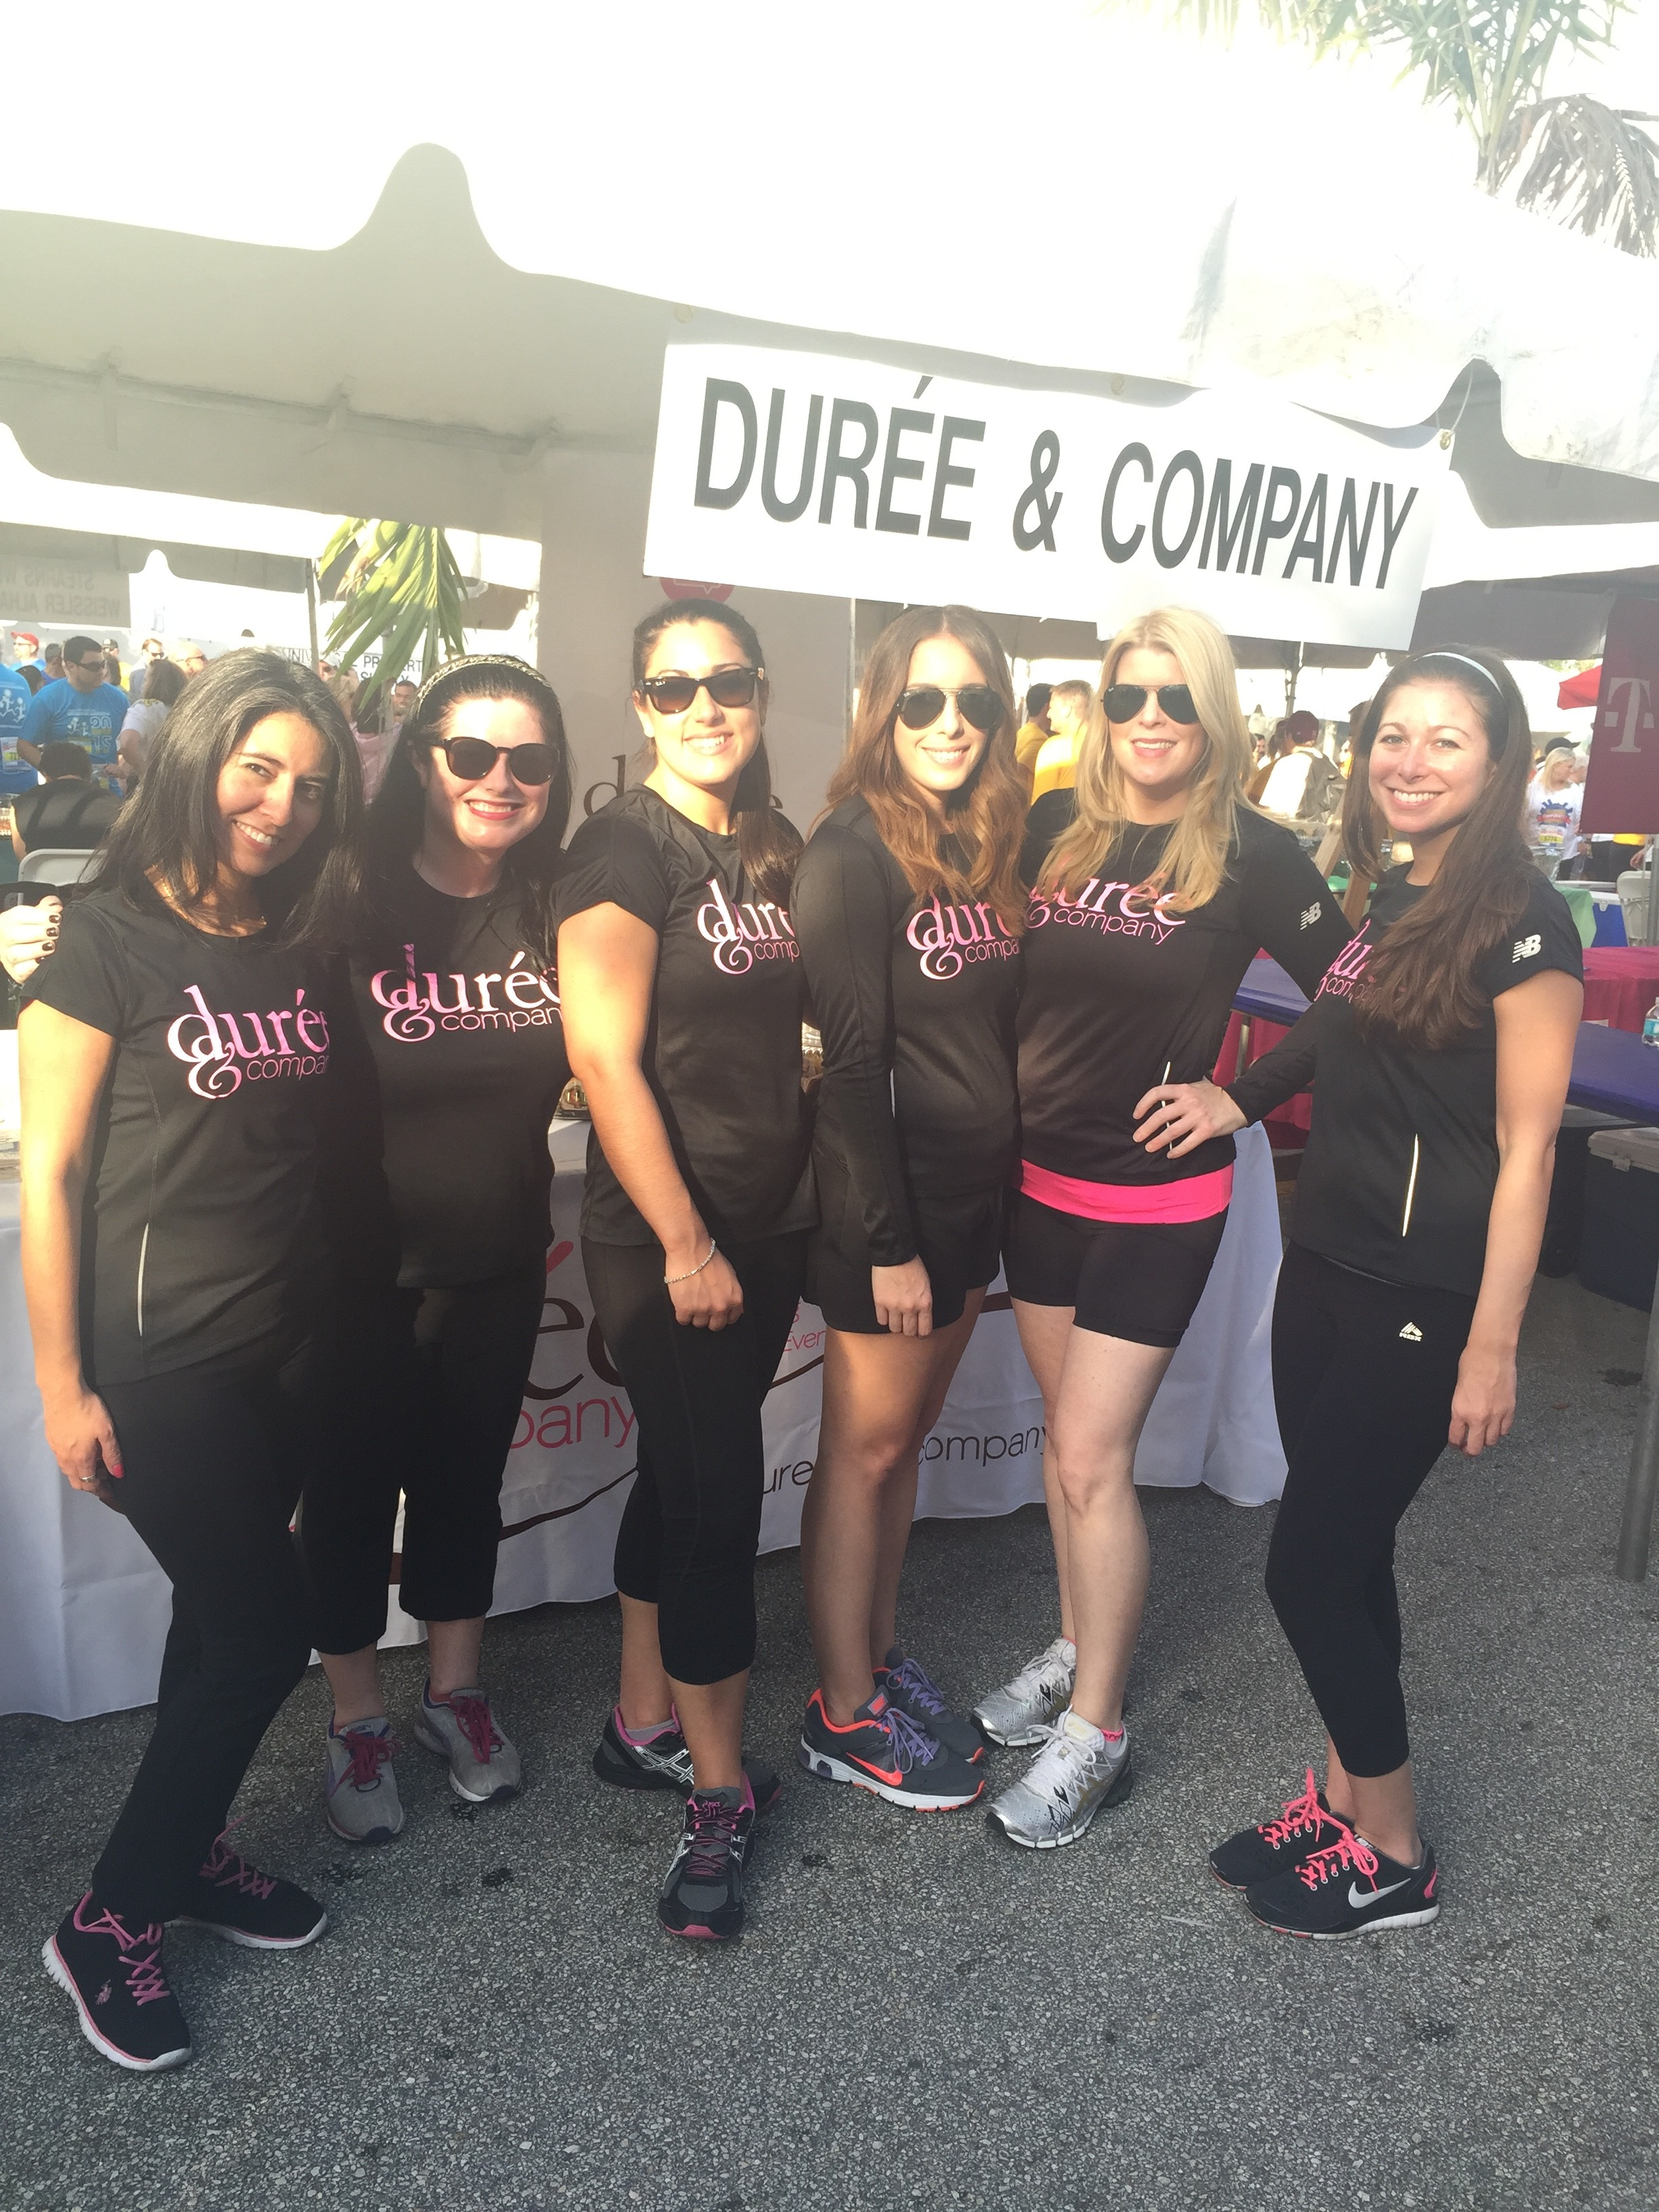 Durée and company corporate run reasons to run 5k